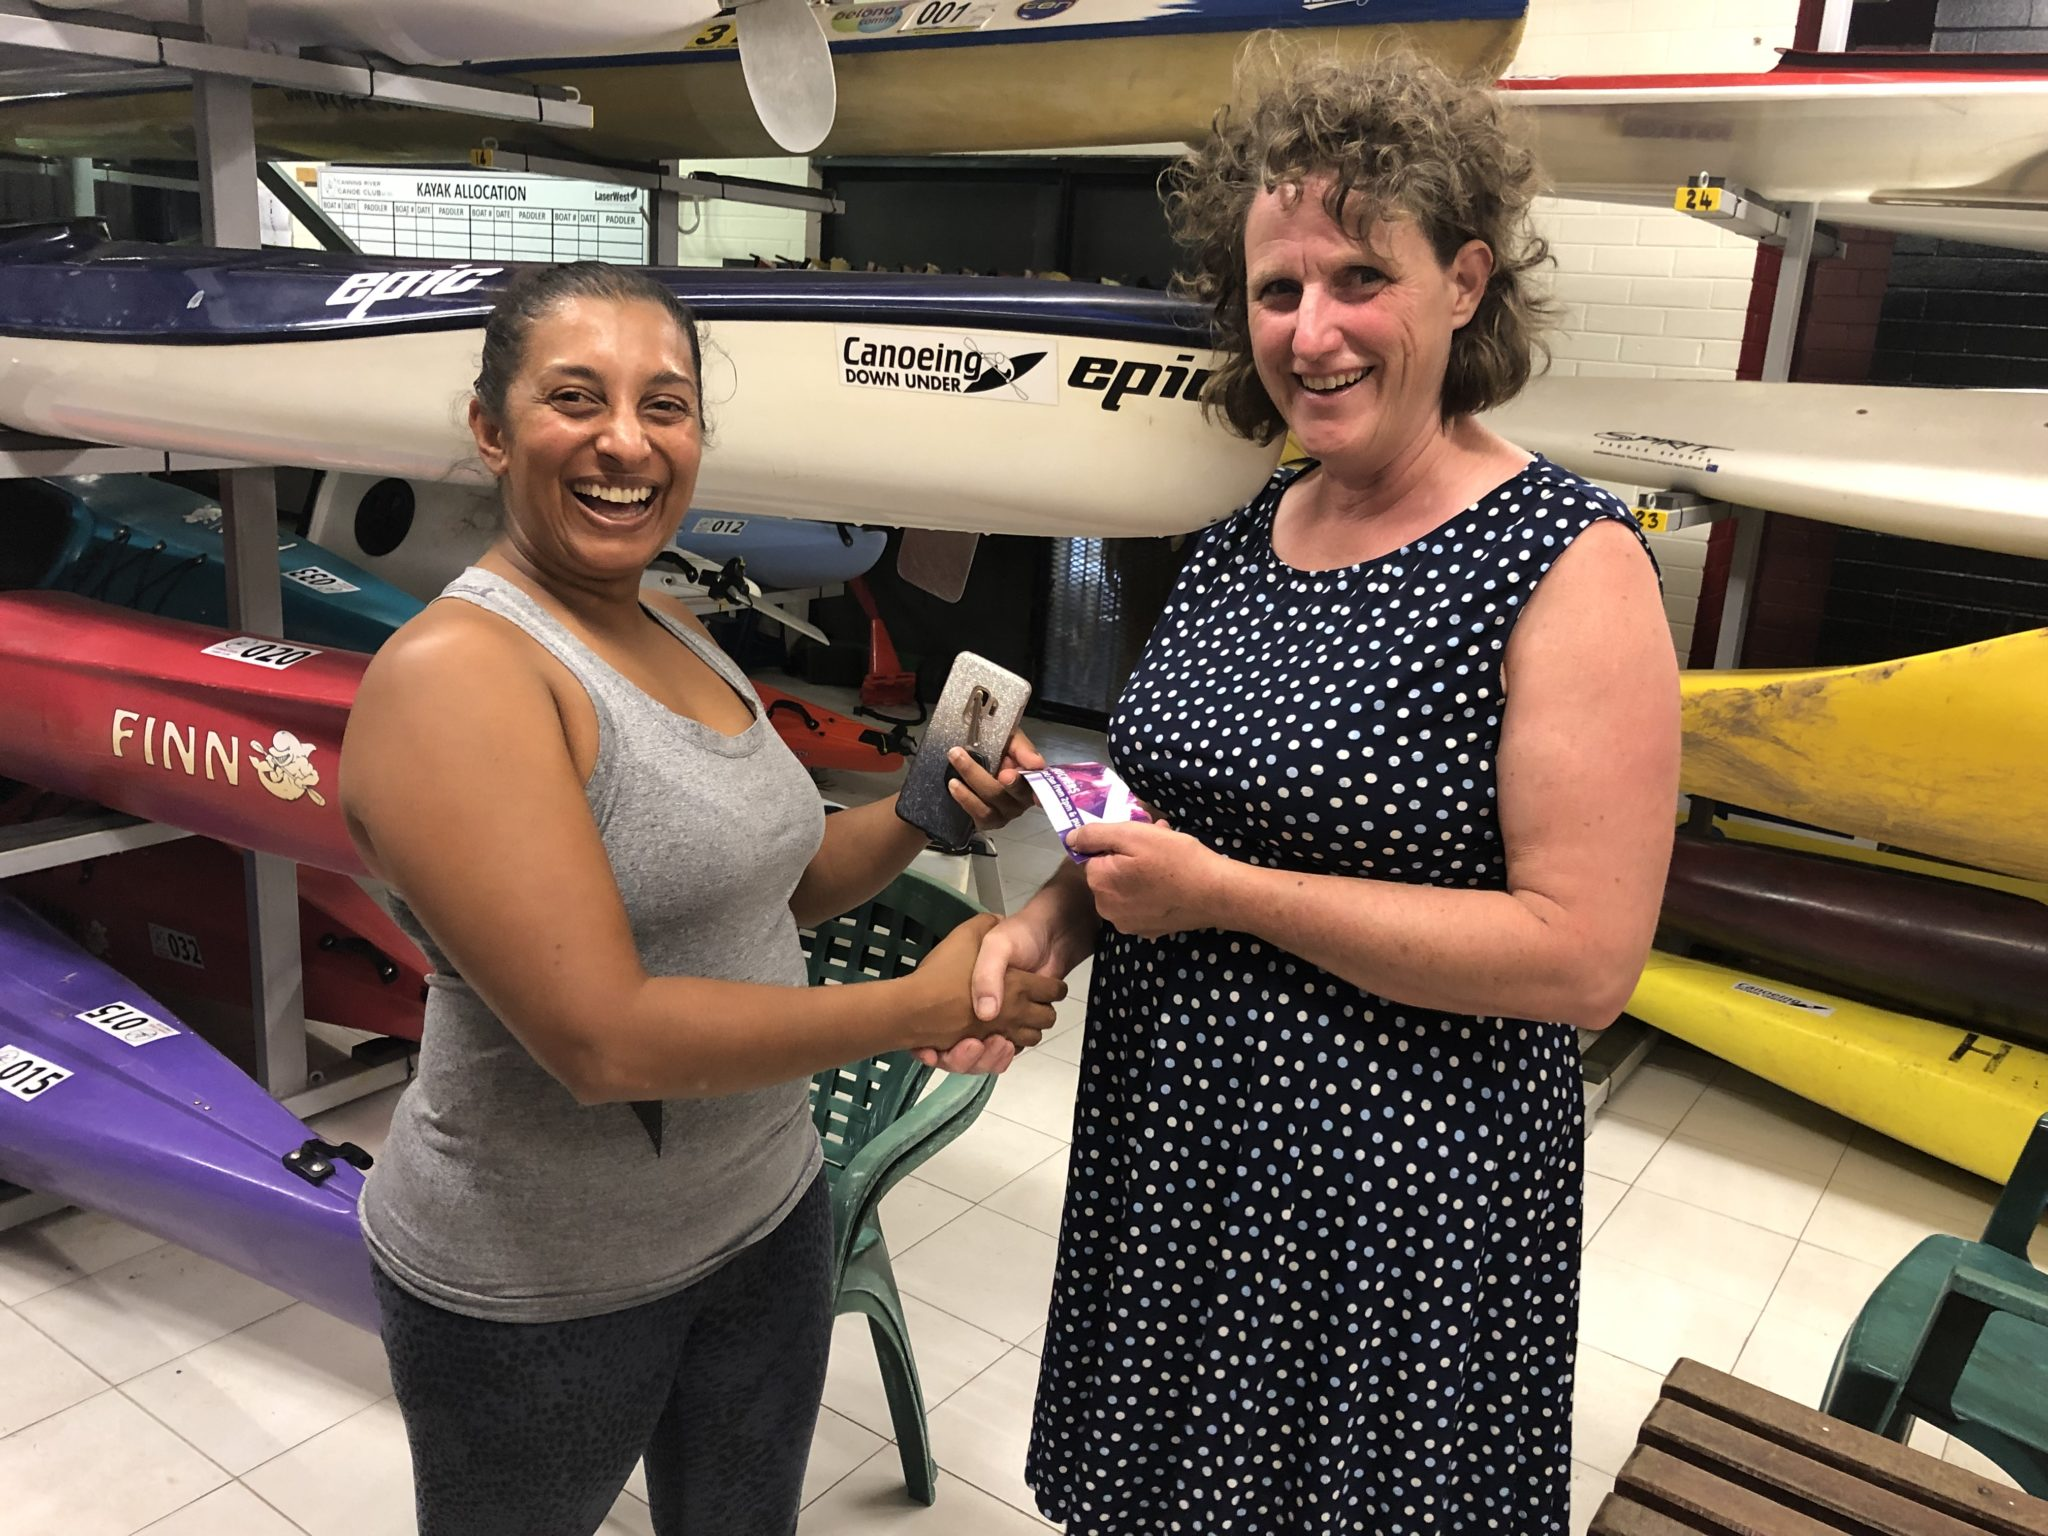 Tuesday 19th February 2019 : Tonight's photo shows club member Nishani Jacob presenting Cindy Coward with the winners movie voucher